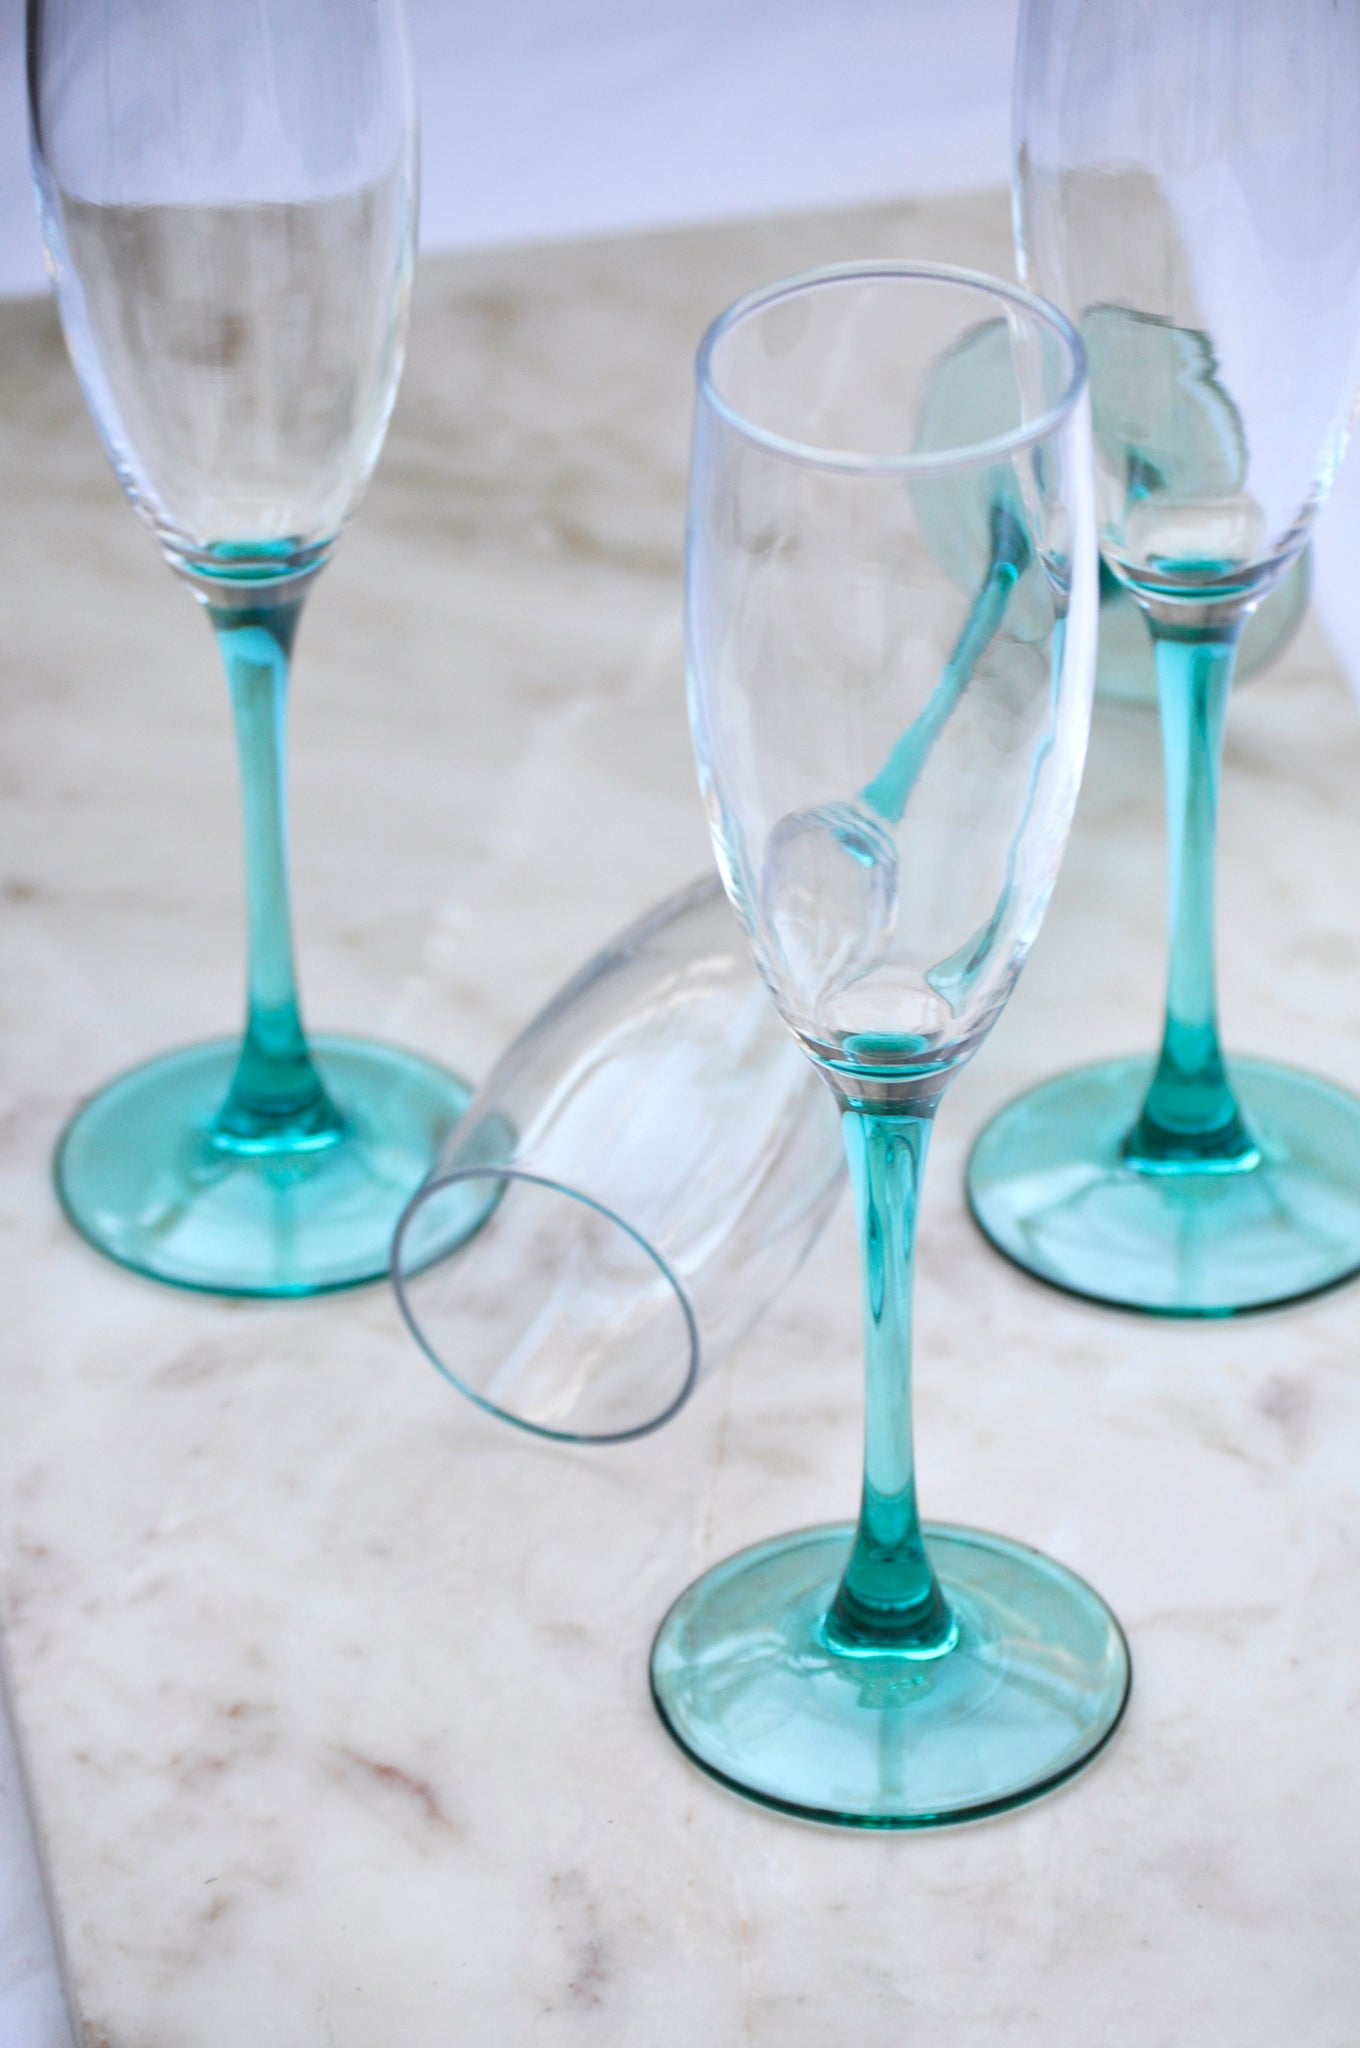 VINTAGE FRENCH GREEN FOOT CHAMPAGNE GLASSES - SET OF 4